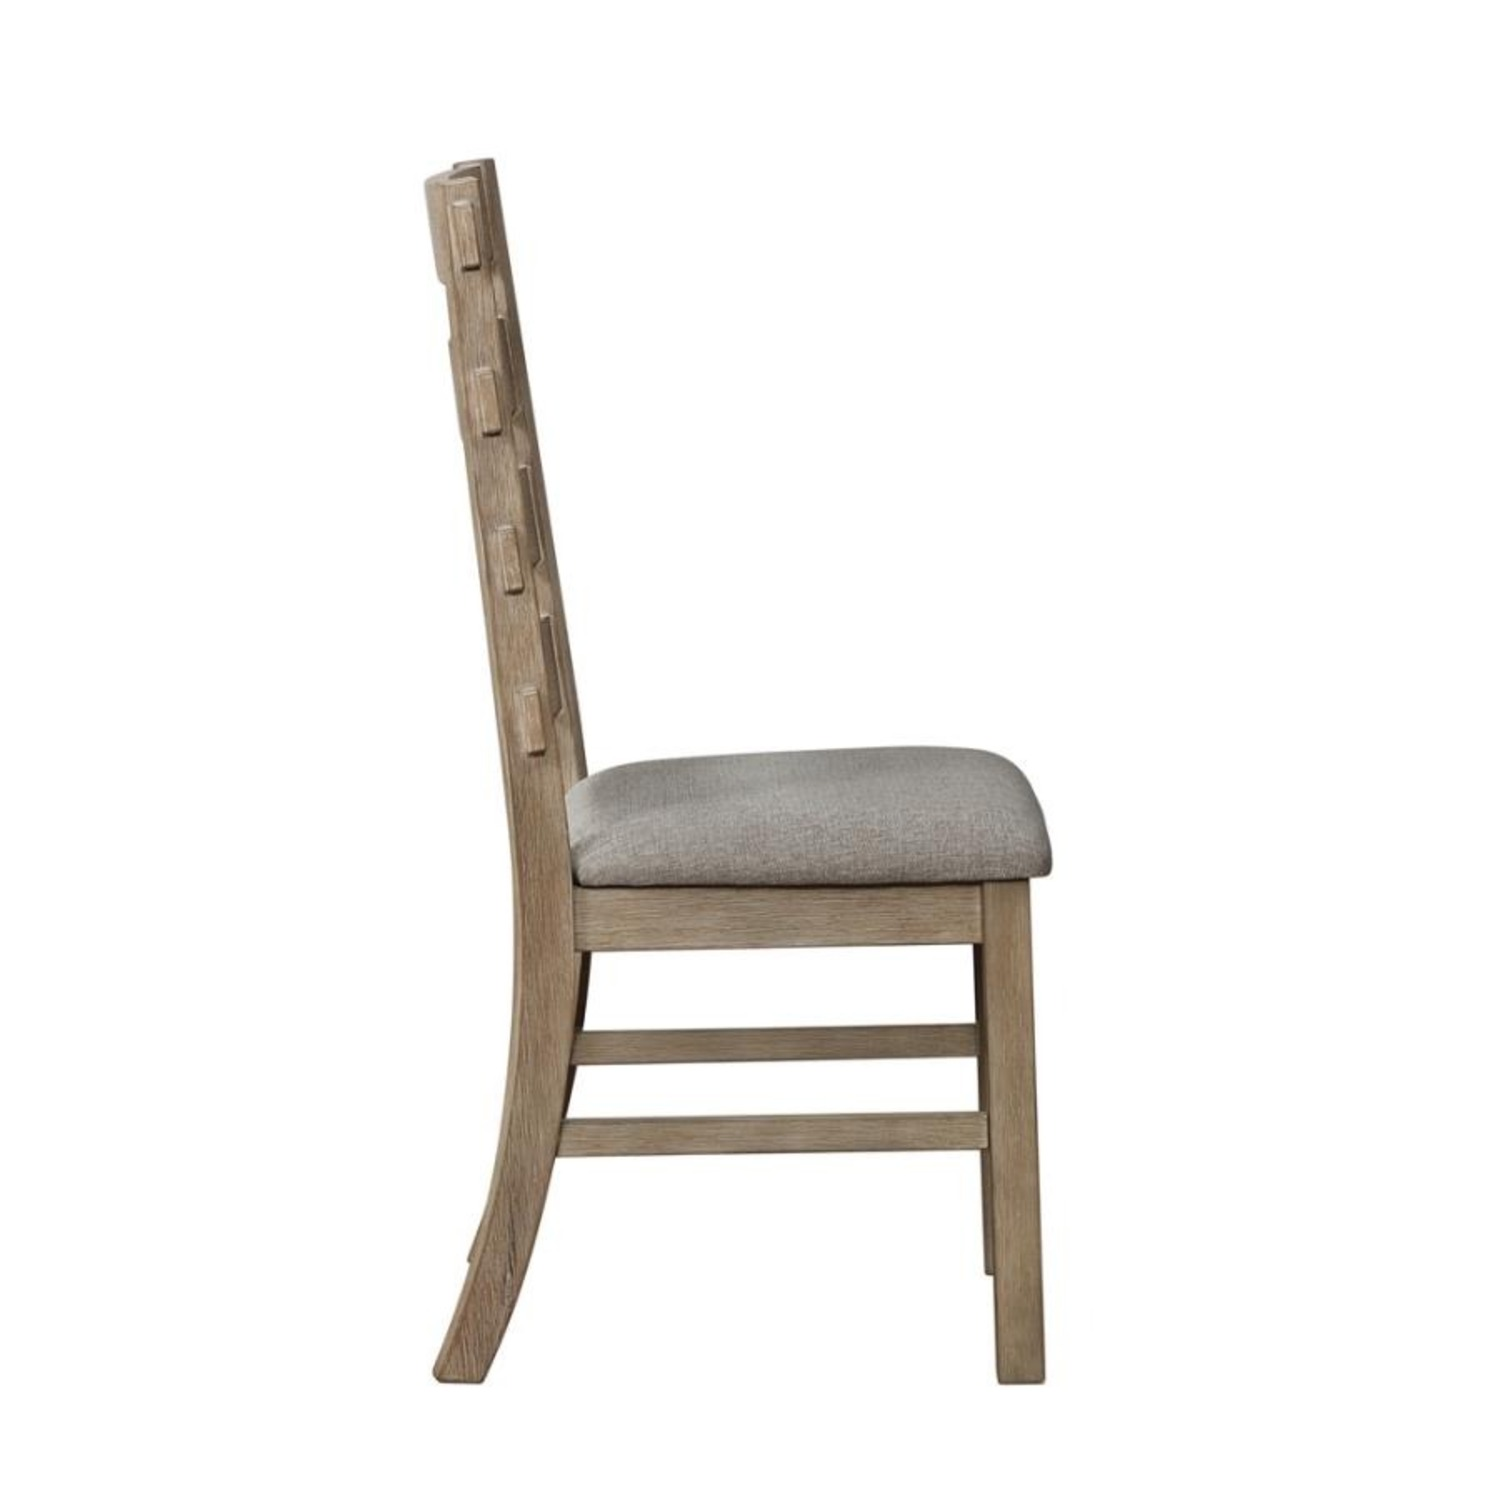 Rustic Dining Chair In Vineyard Oak Finish - image-2